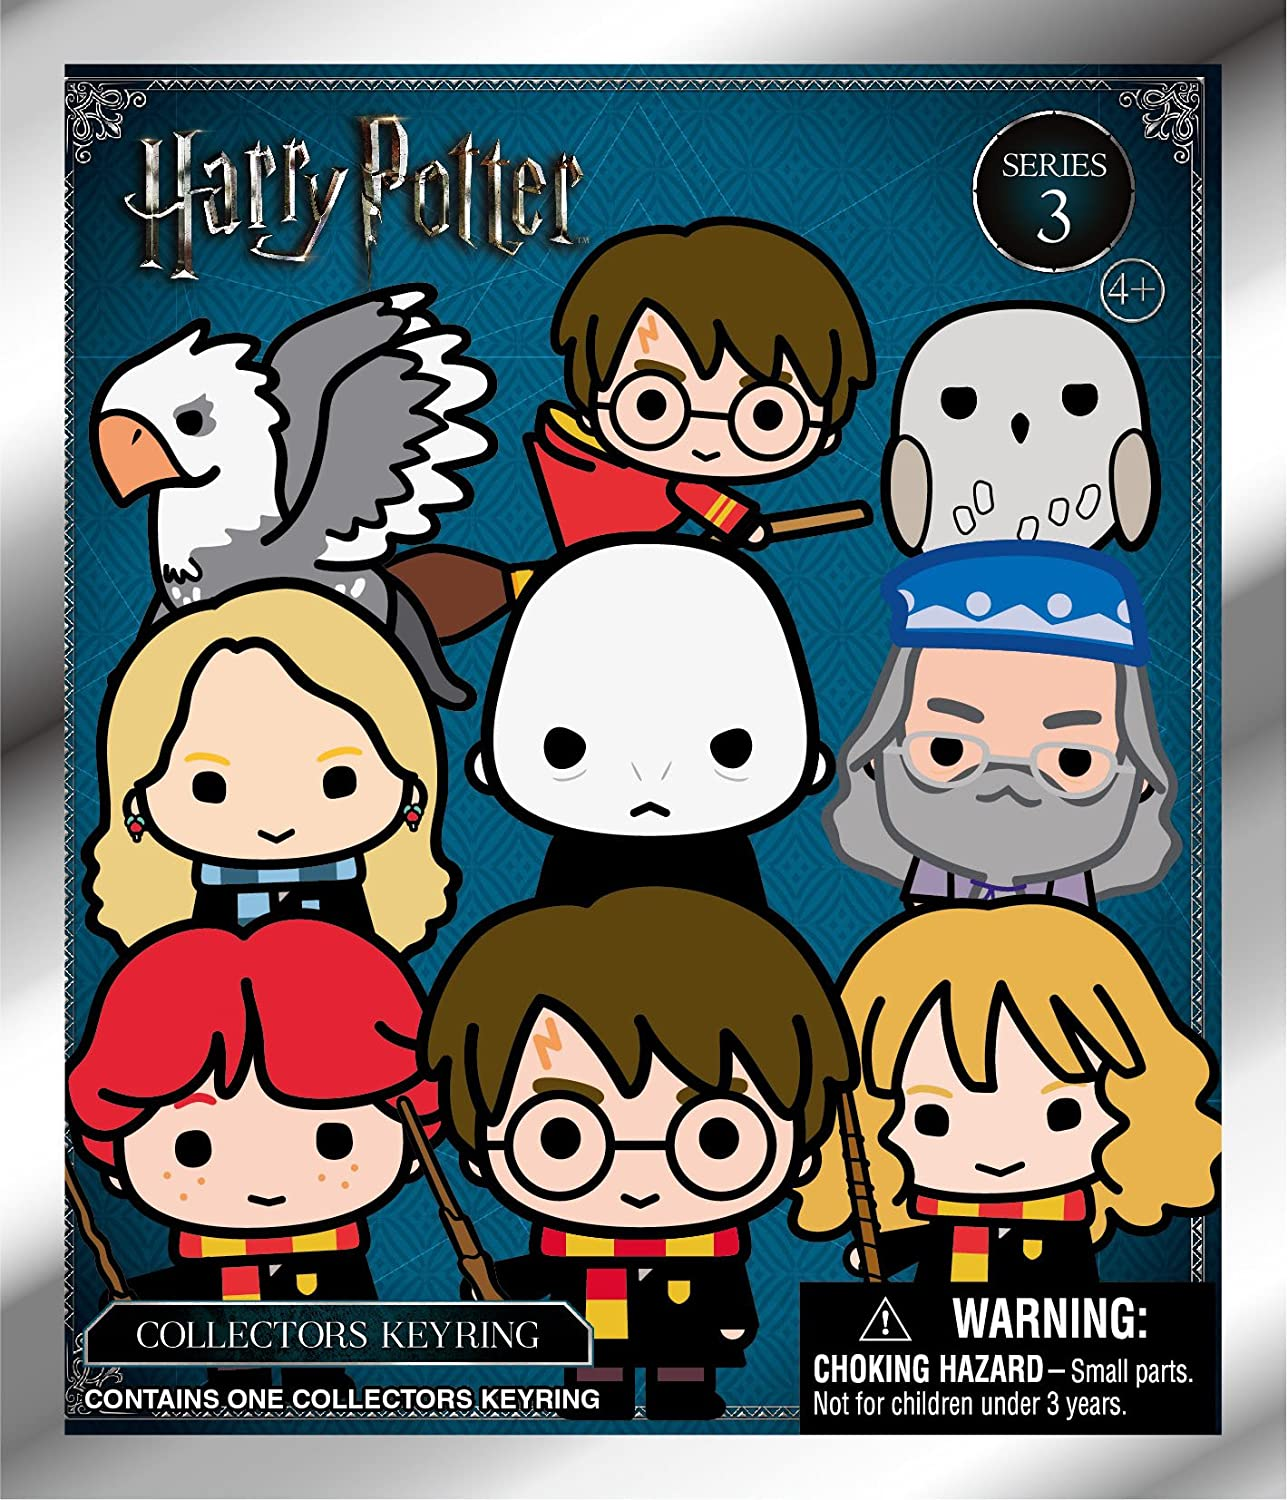 blind bag Harry Potter 3D Collectable Keyrings Series 1 1 only supplied